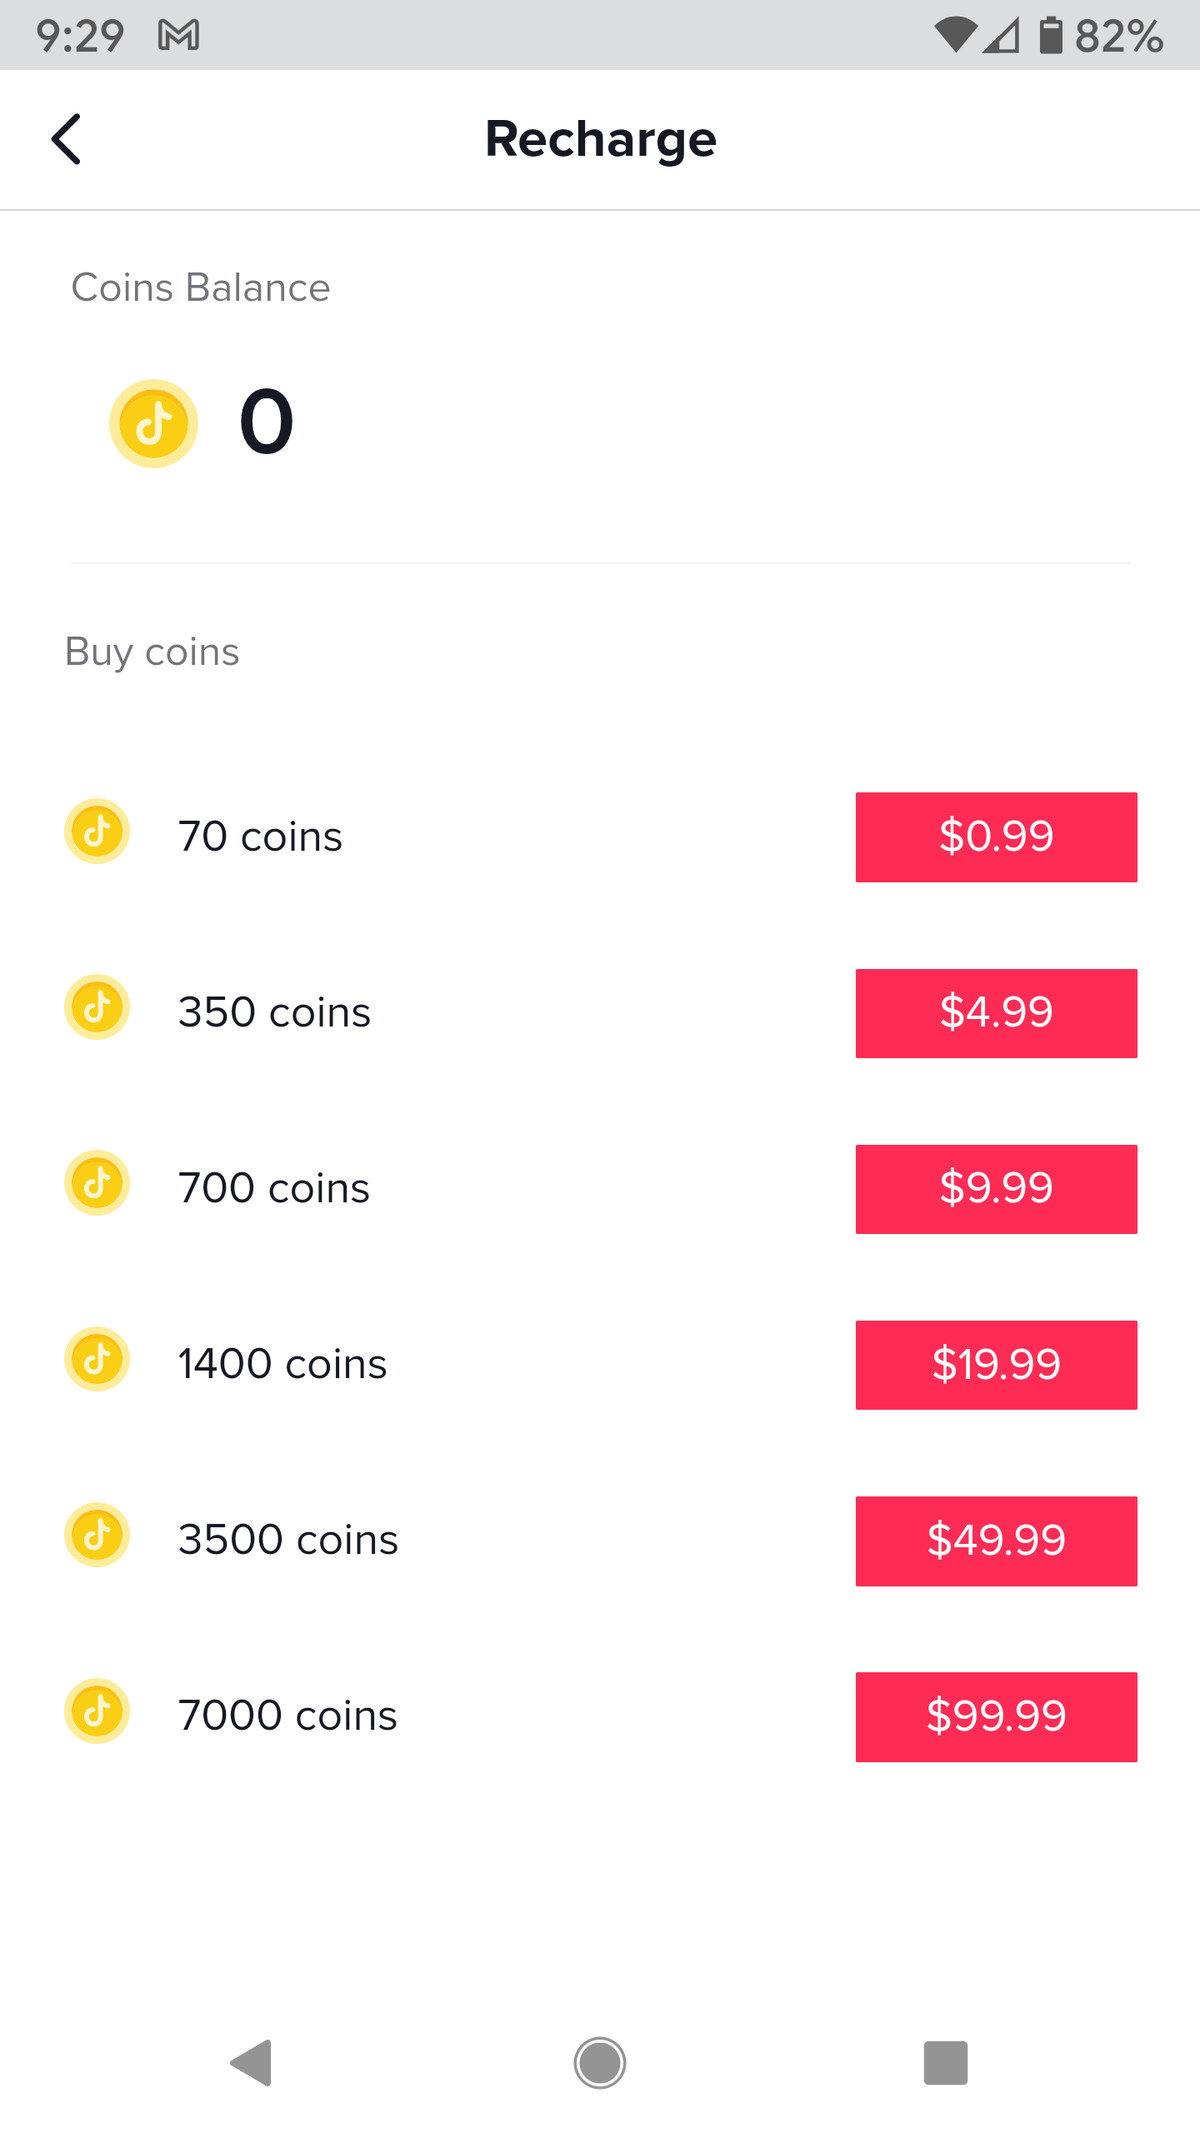 Choose how many coins you want to buy.